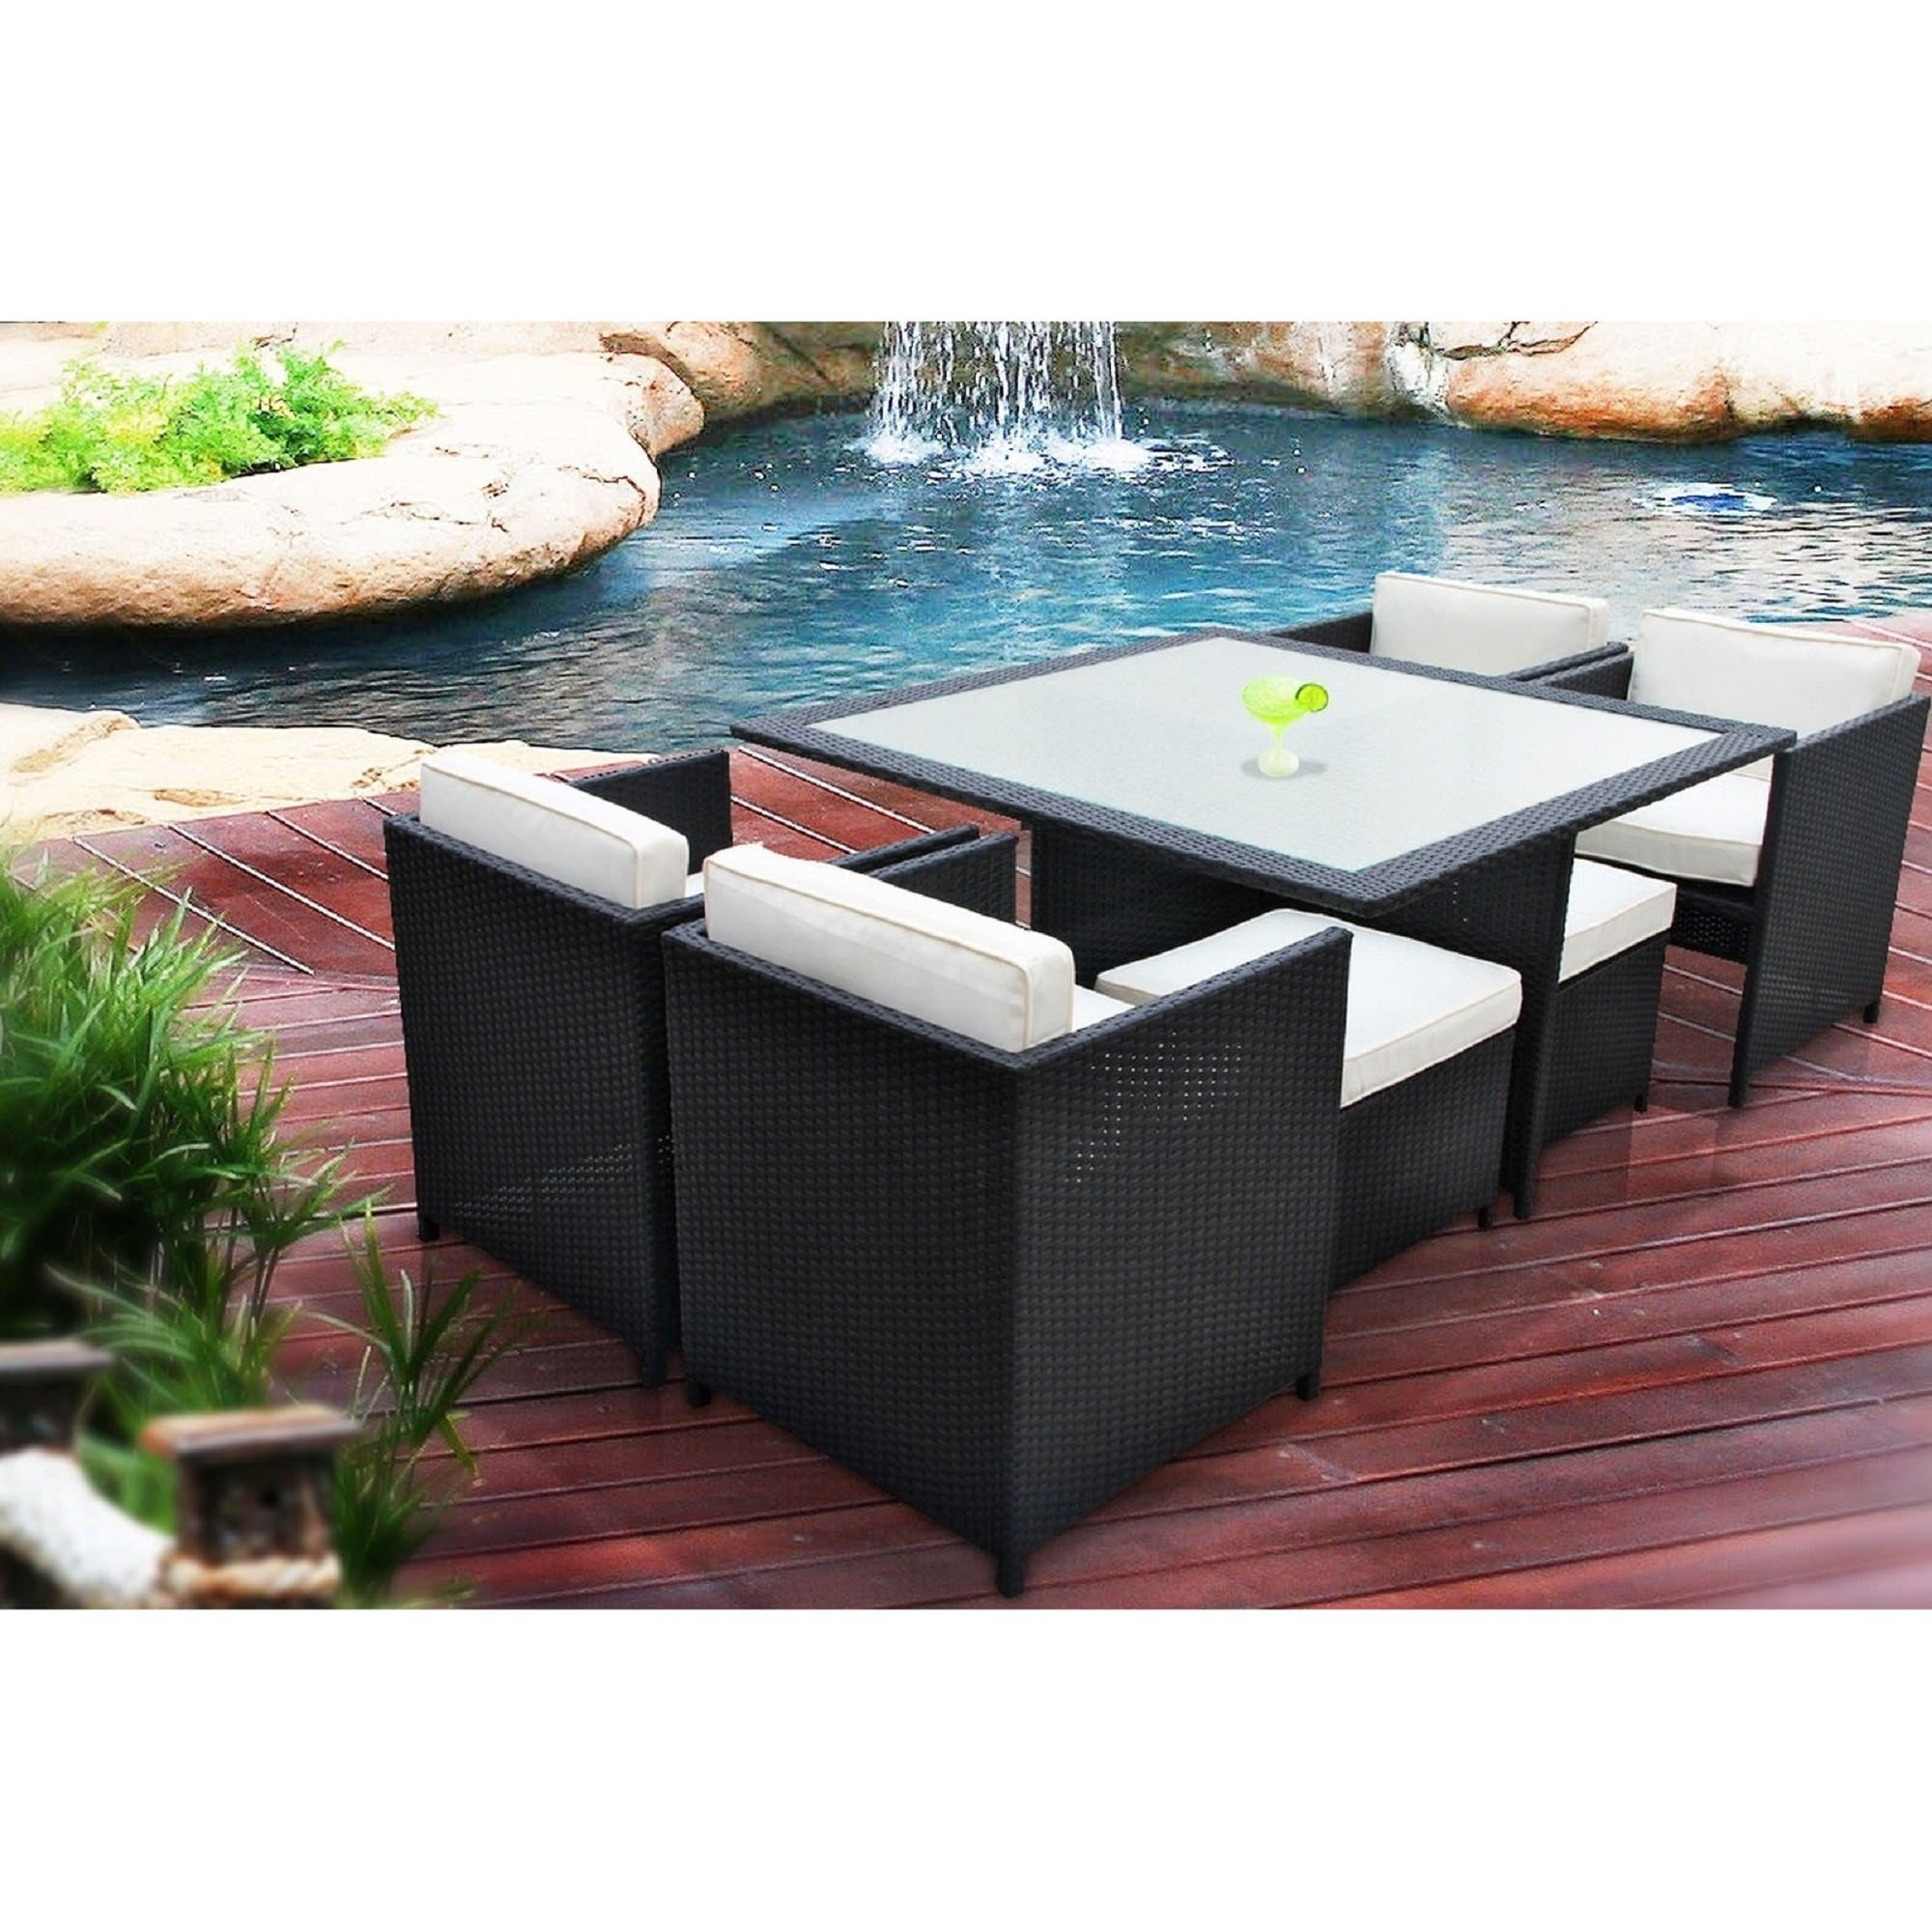 ... outdoor wicker dining set by modway item eei 726 set now $ 1599 99 was